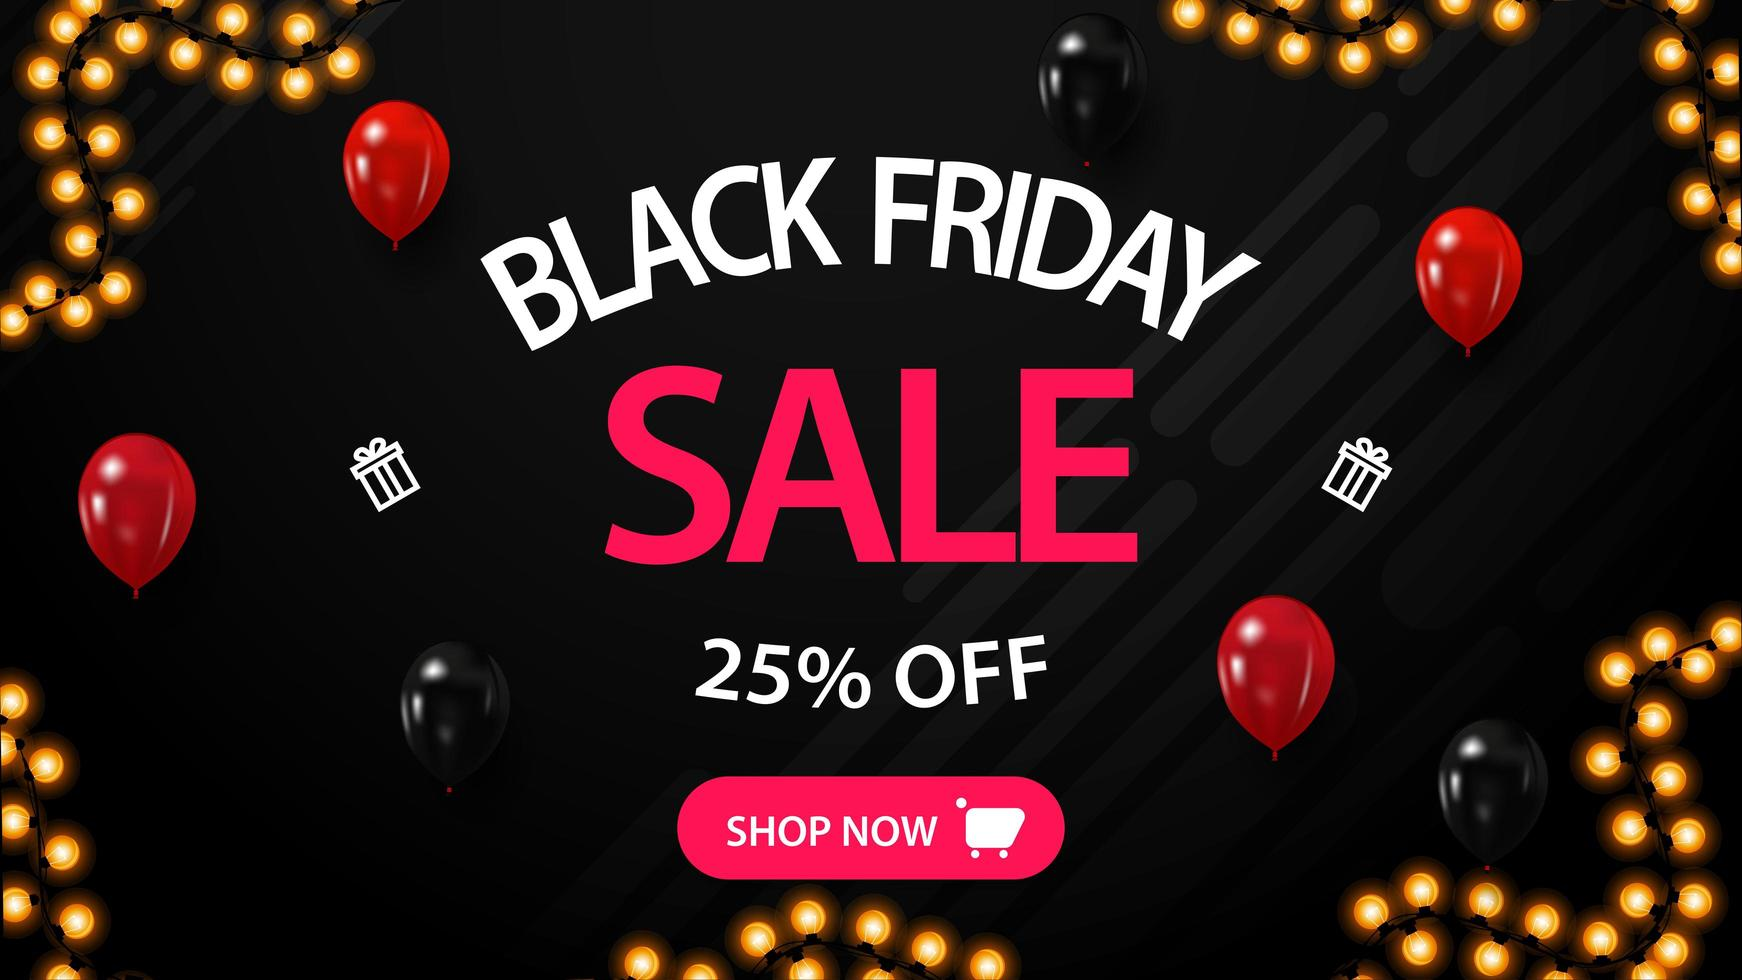 Black Friday sale, up to 25 off, black discount banner vector